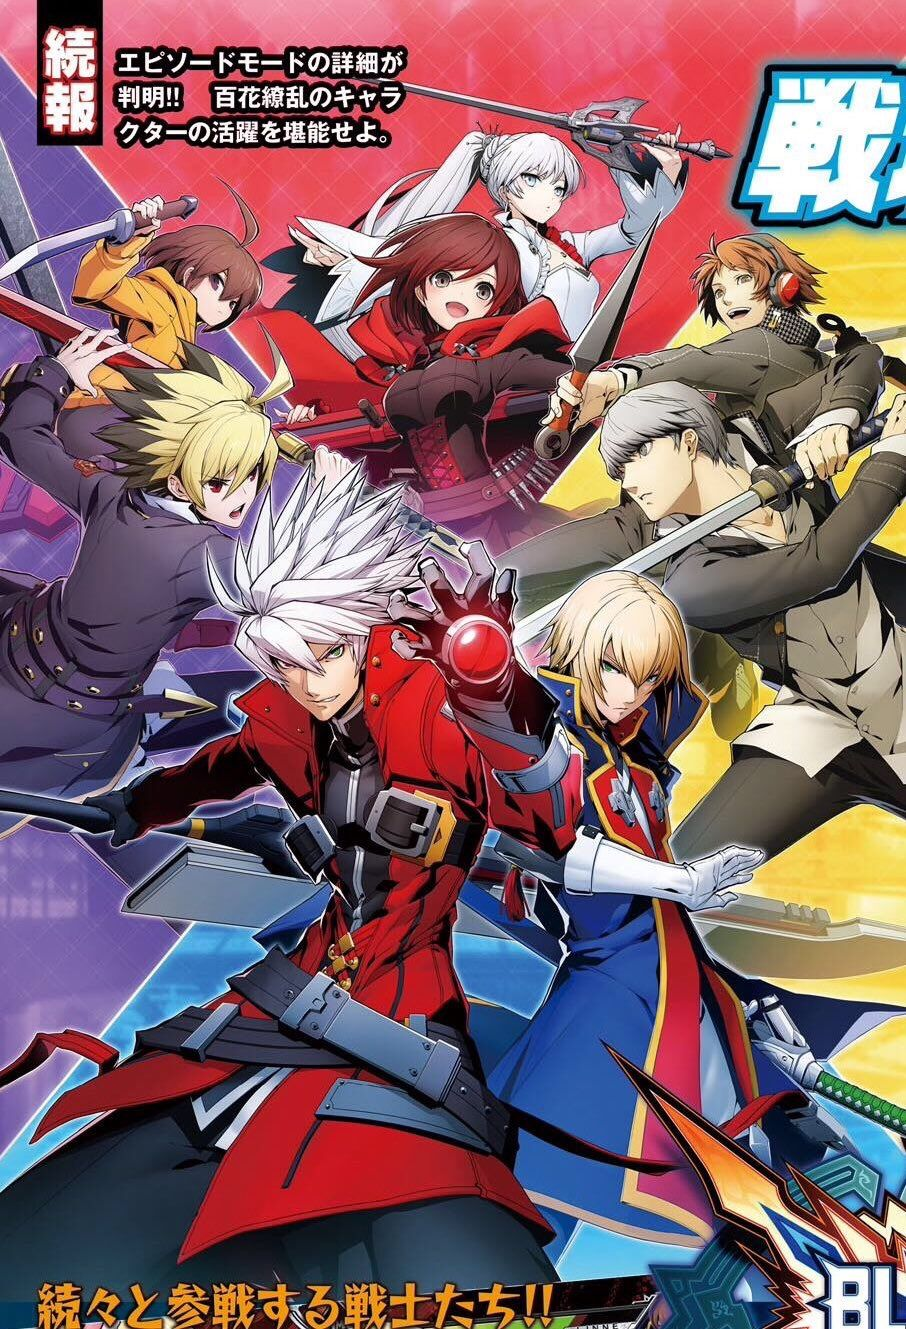 Pin by Ultima on ArcSystems stuff Anime, Anime images